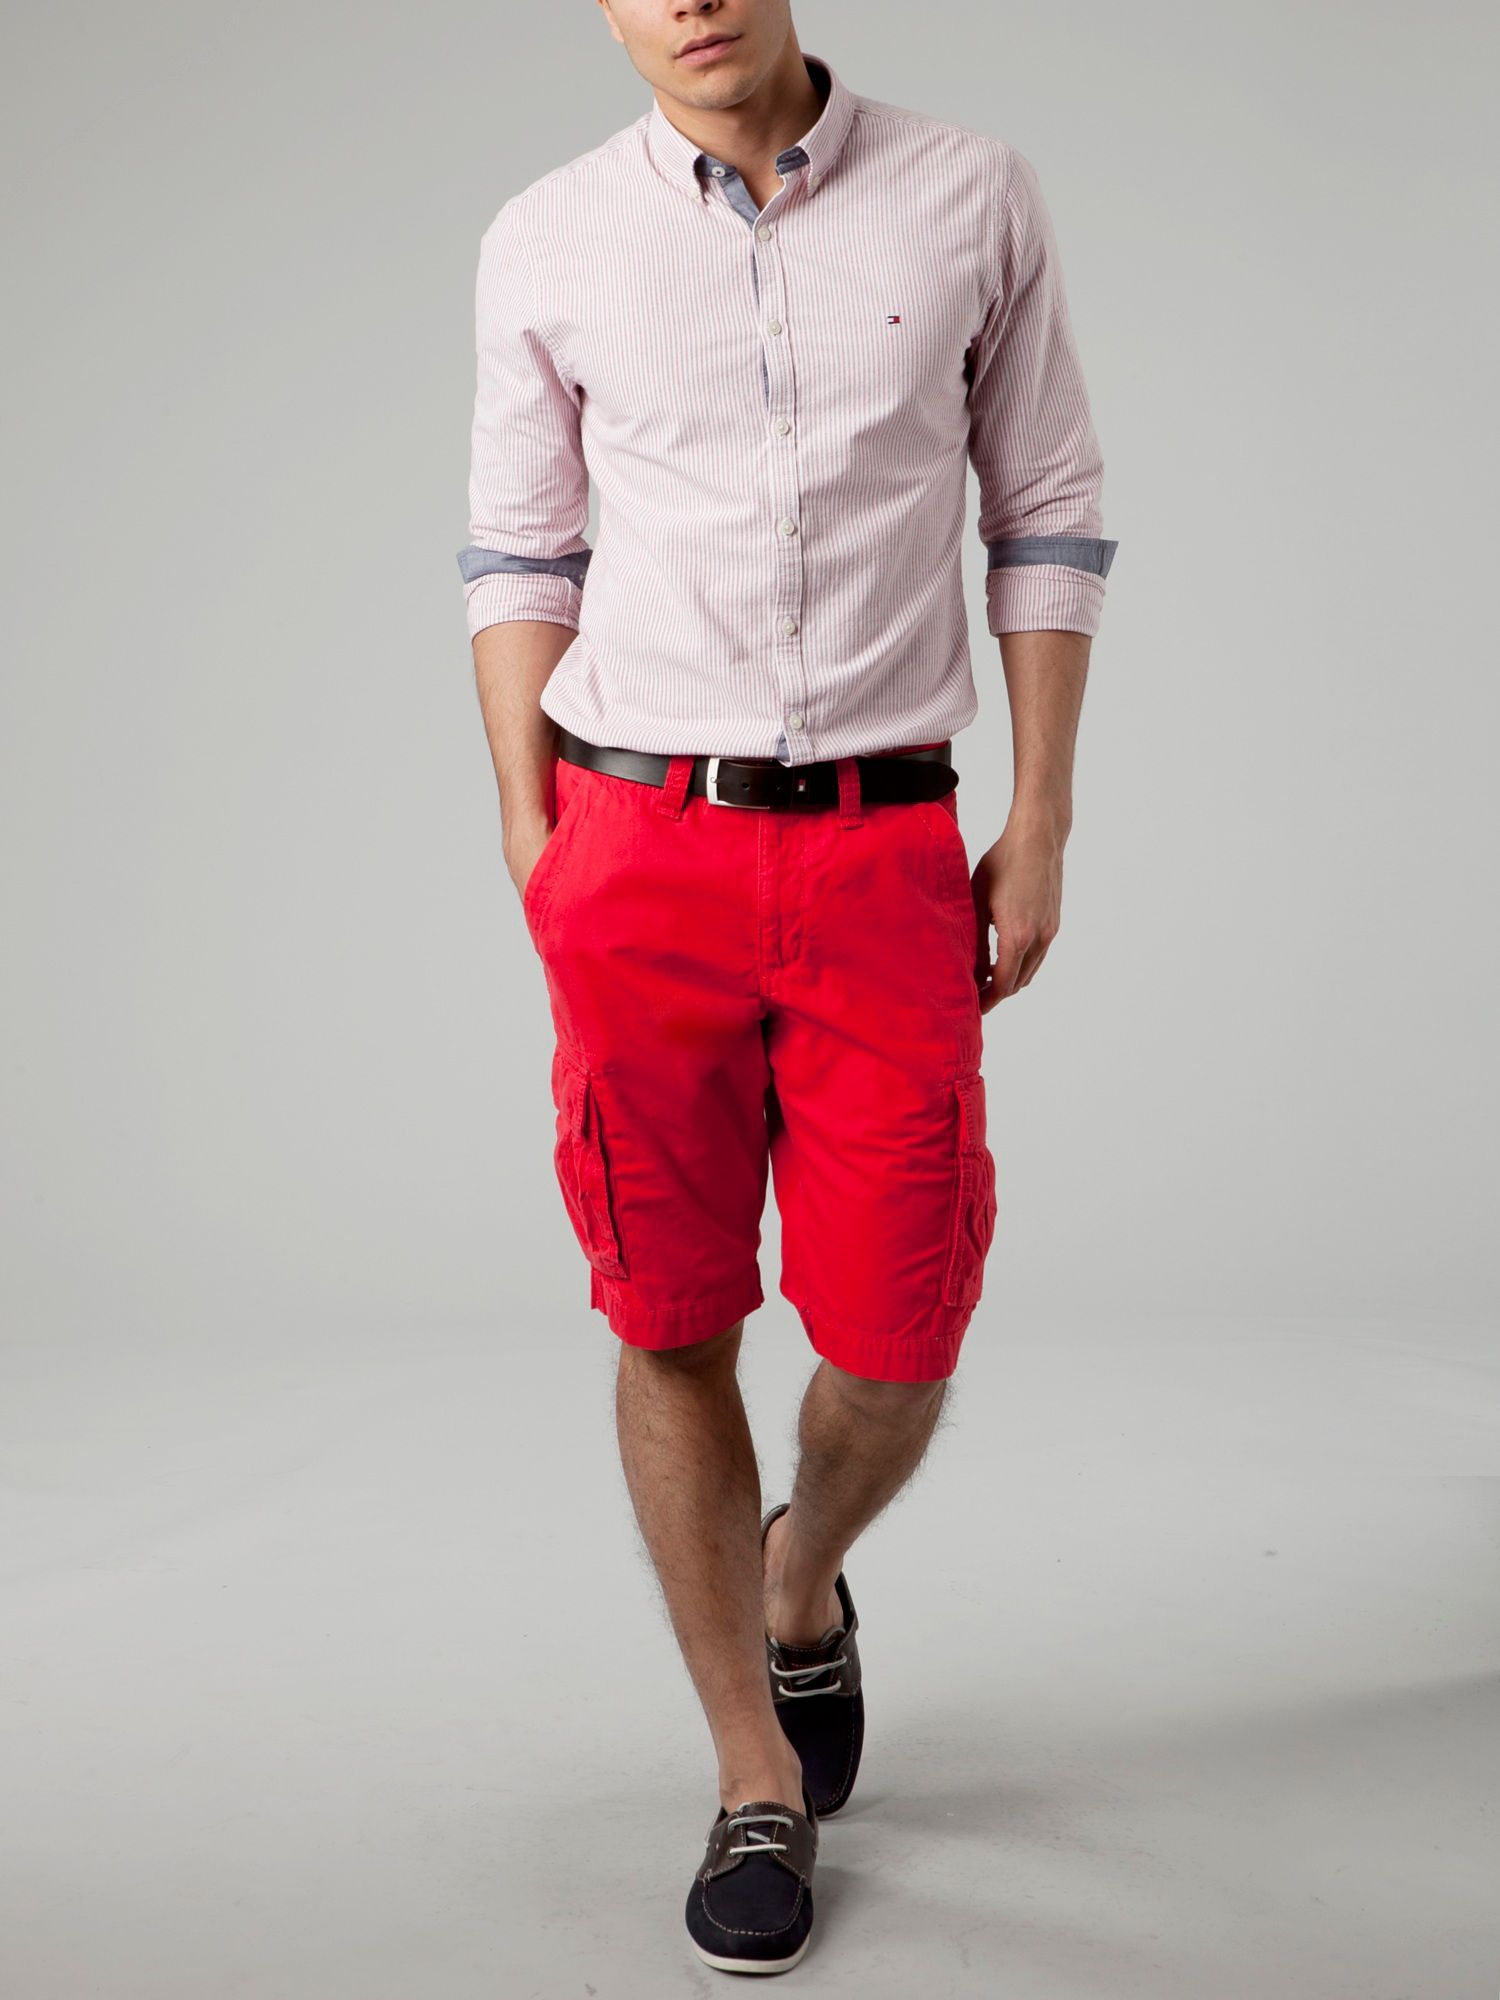 Find mens red cargo shorts at ShopStyle. Shop the latest collection of mens red cargo shorts from the most popular stores - all in one place.